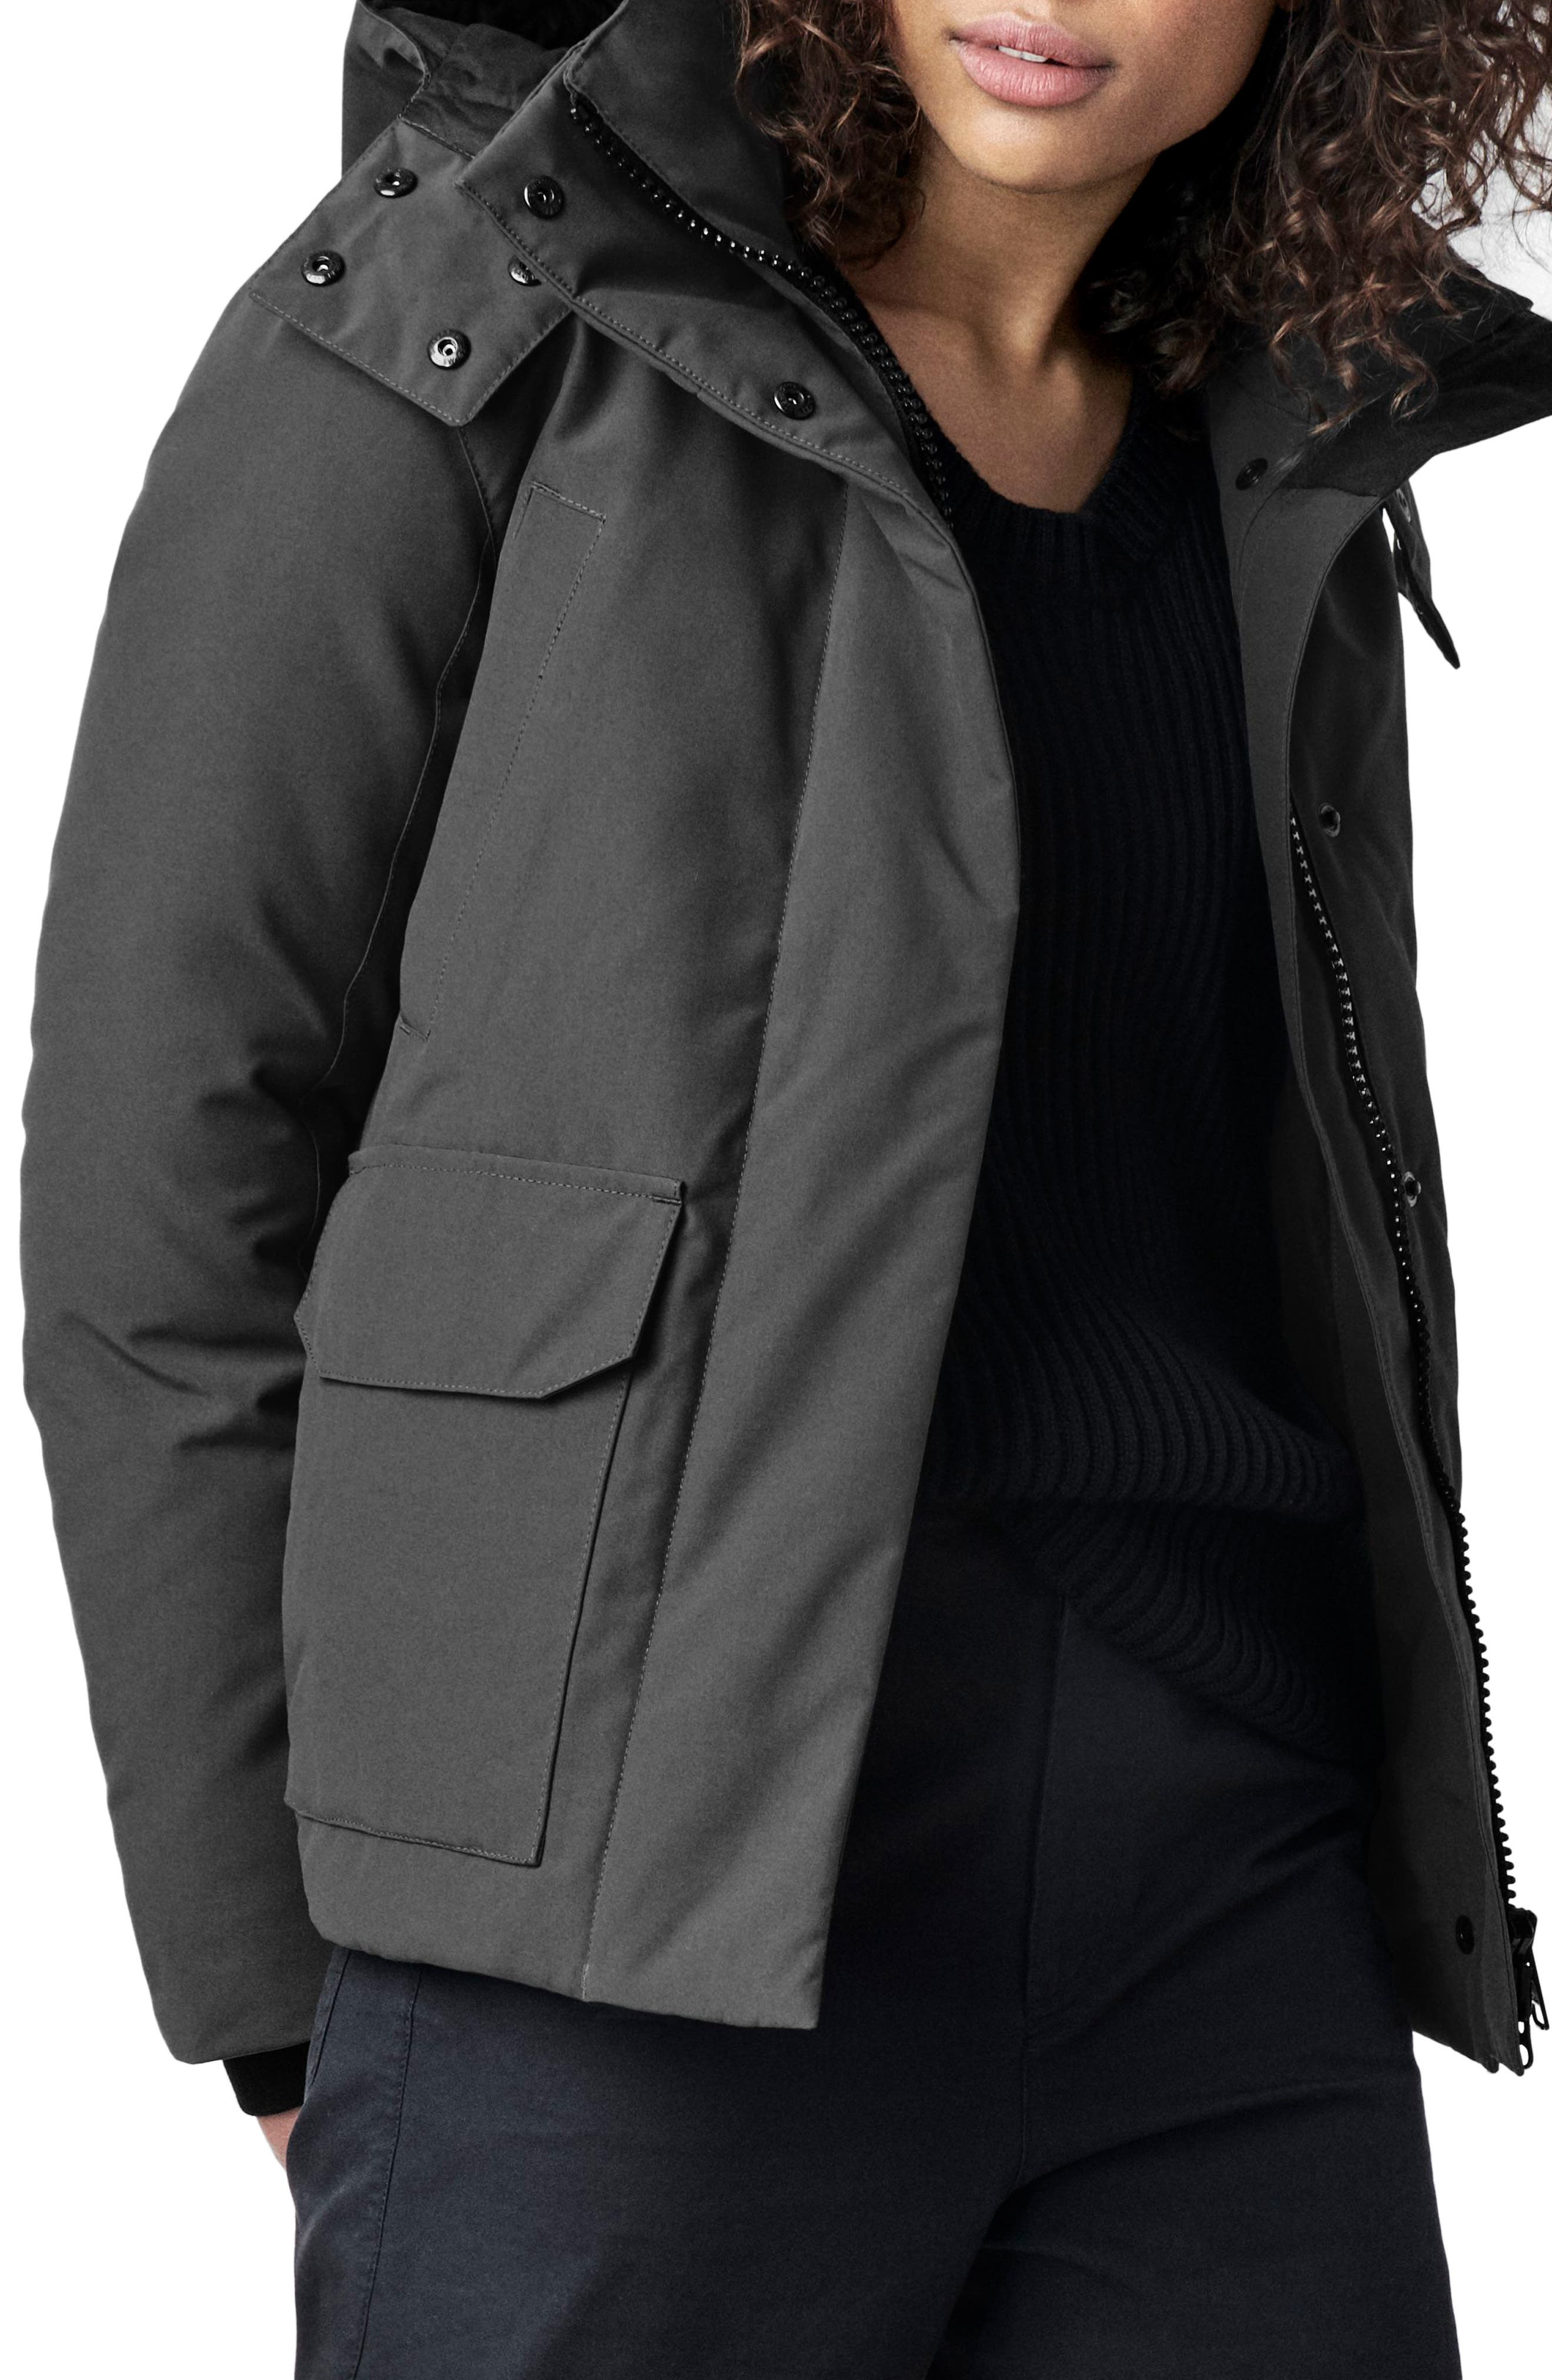 Canada Goose Blakely Water Resistant 625 Fill Power Down Parka, (14-16) - Grey